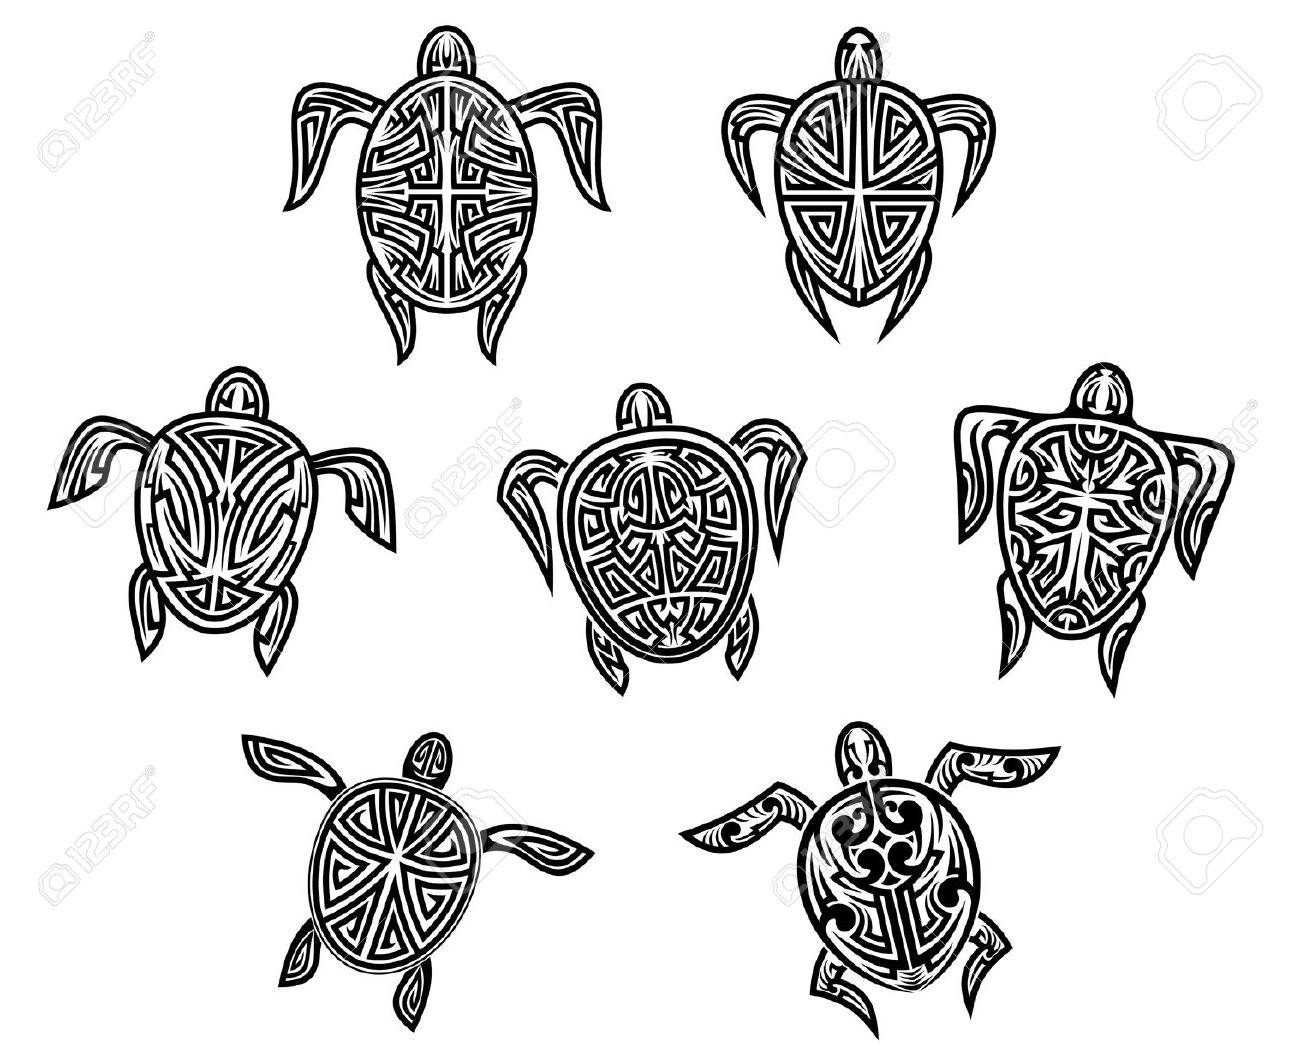 Tribal Turtles Tattoos Set Isolated On White Bnackground Royalty